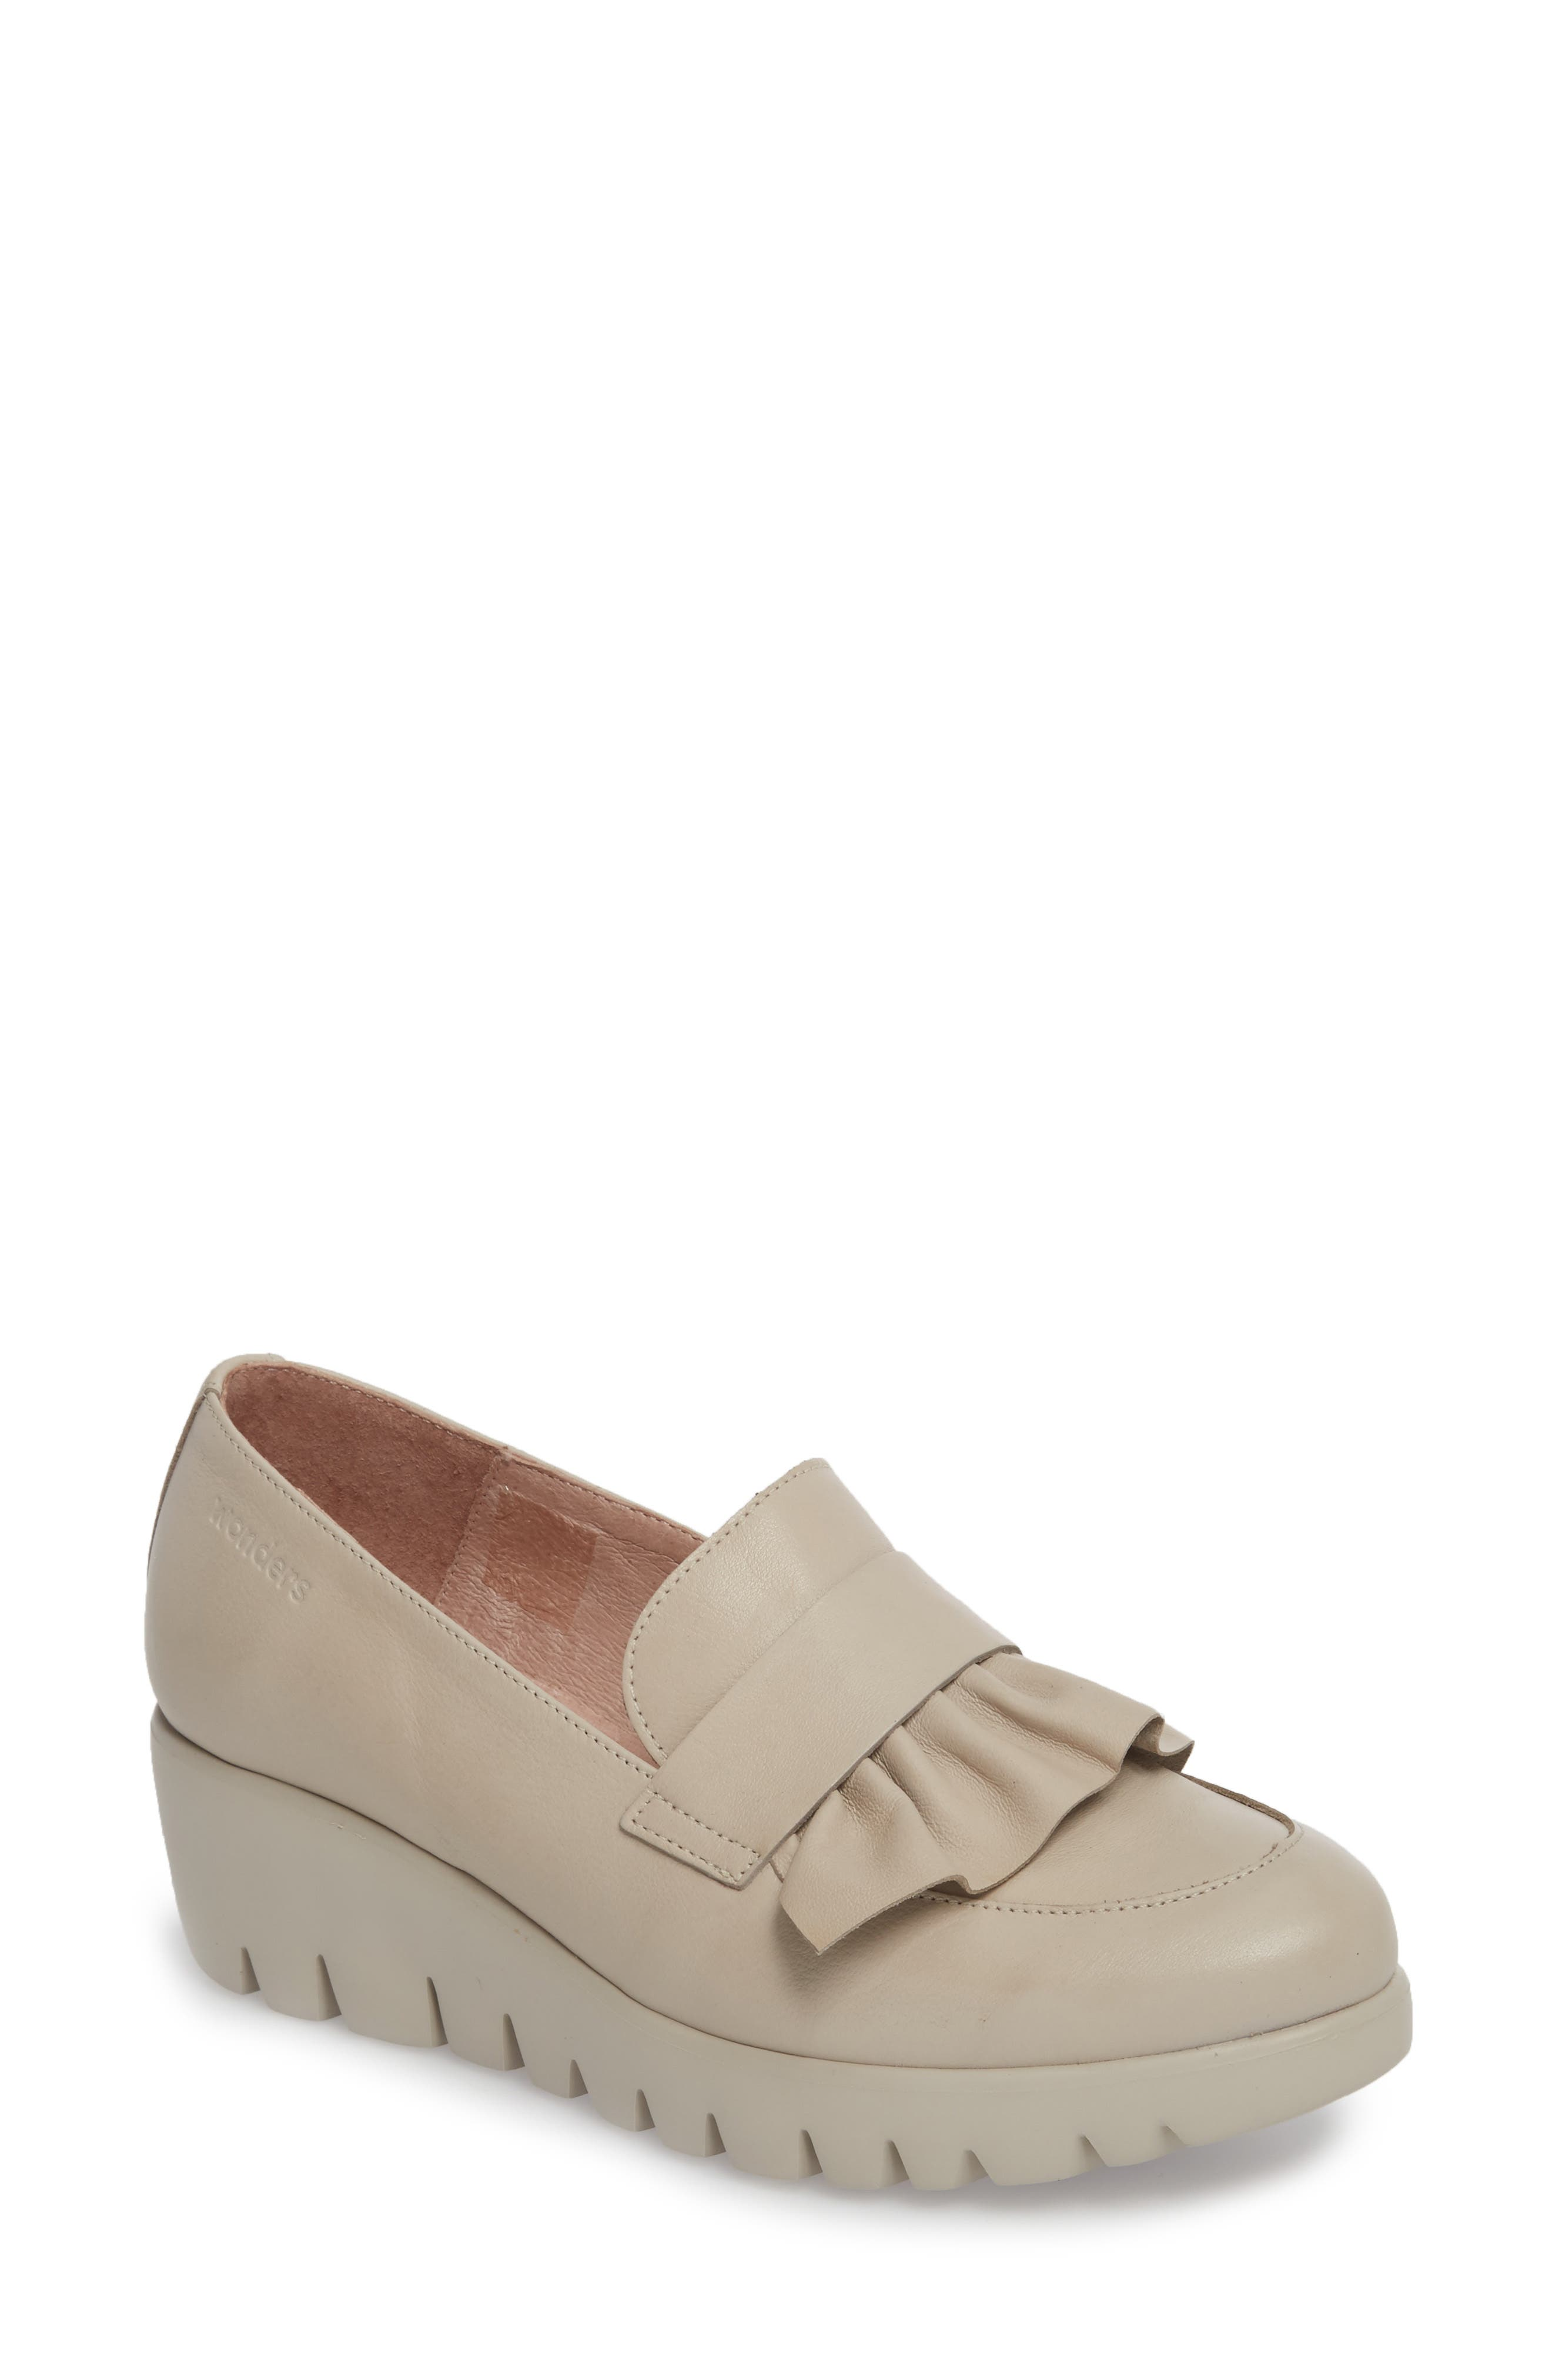 Loafer Wedge,                             Main thumbnail 1, color,                             LIGHT GREY LEATHER